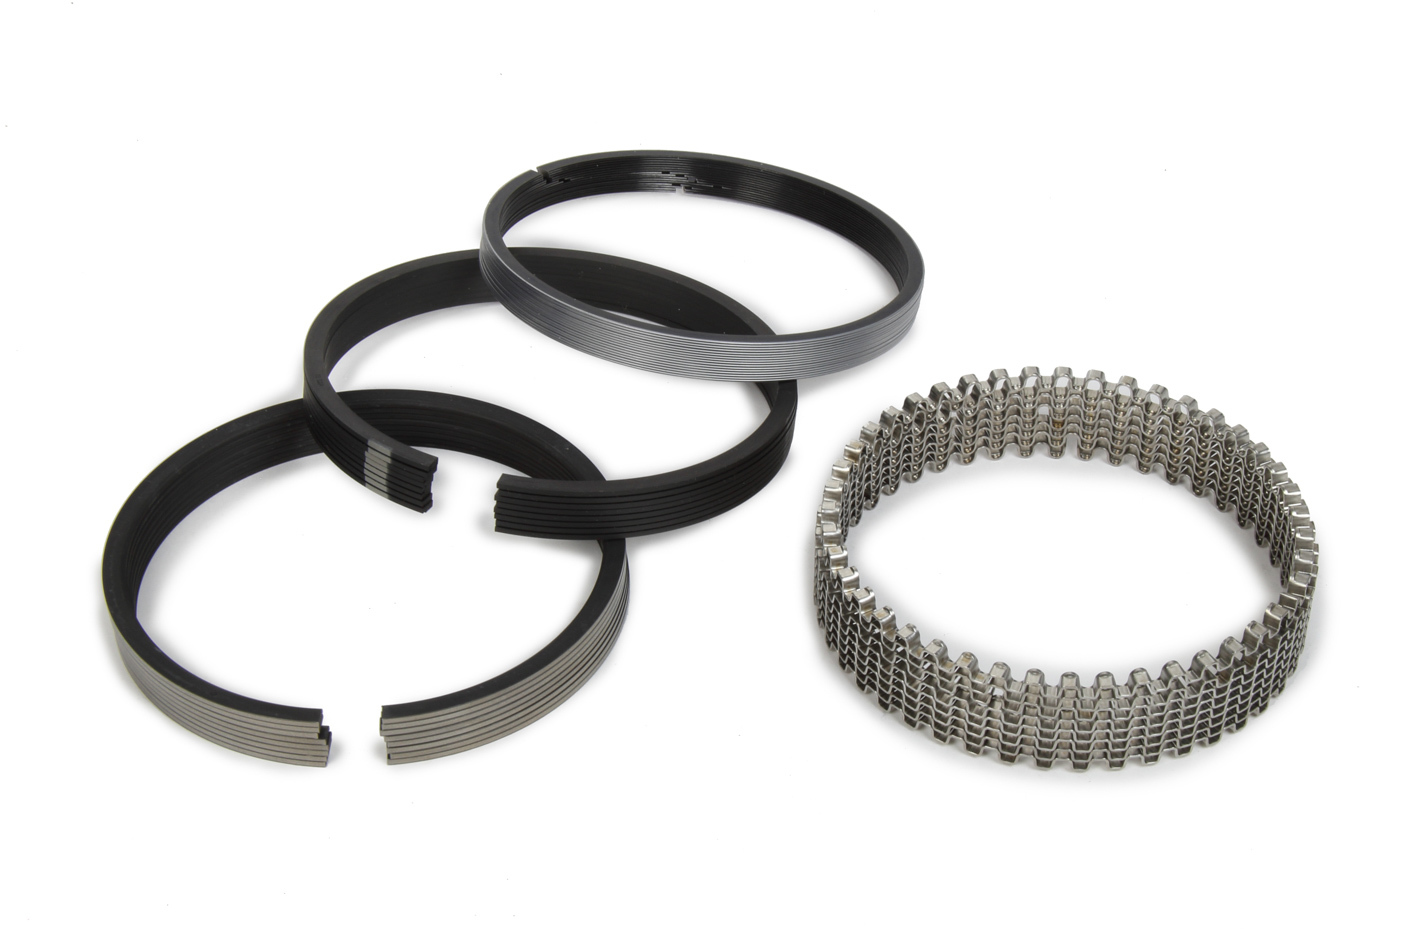 Michigan 77 315-0036.035 Piston Rings, 4.030 in Bore, File Fit, 1/16 x 1/16 x 3/16 in Thick, Standard Tension, Plasma Moly, 8 Cylinder, Kit